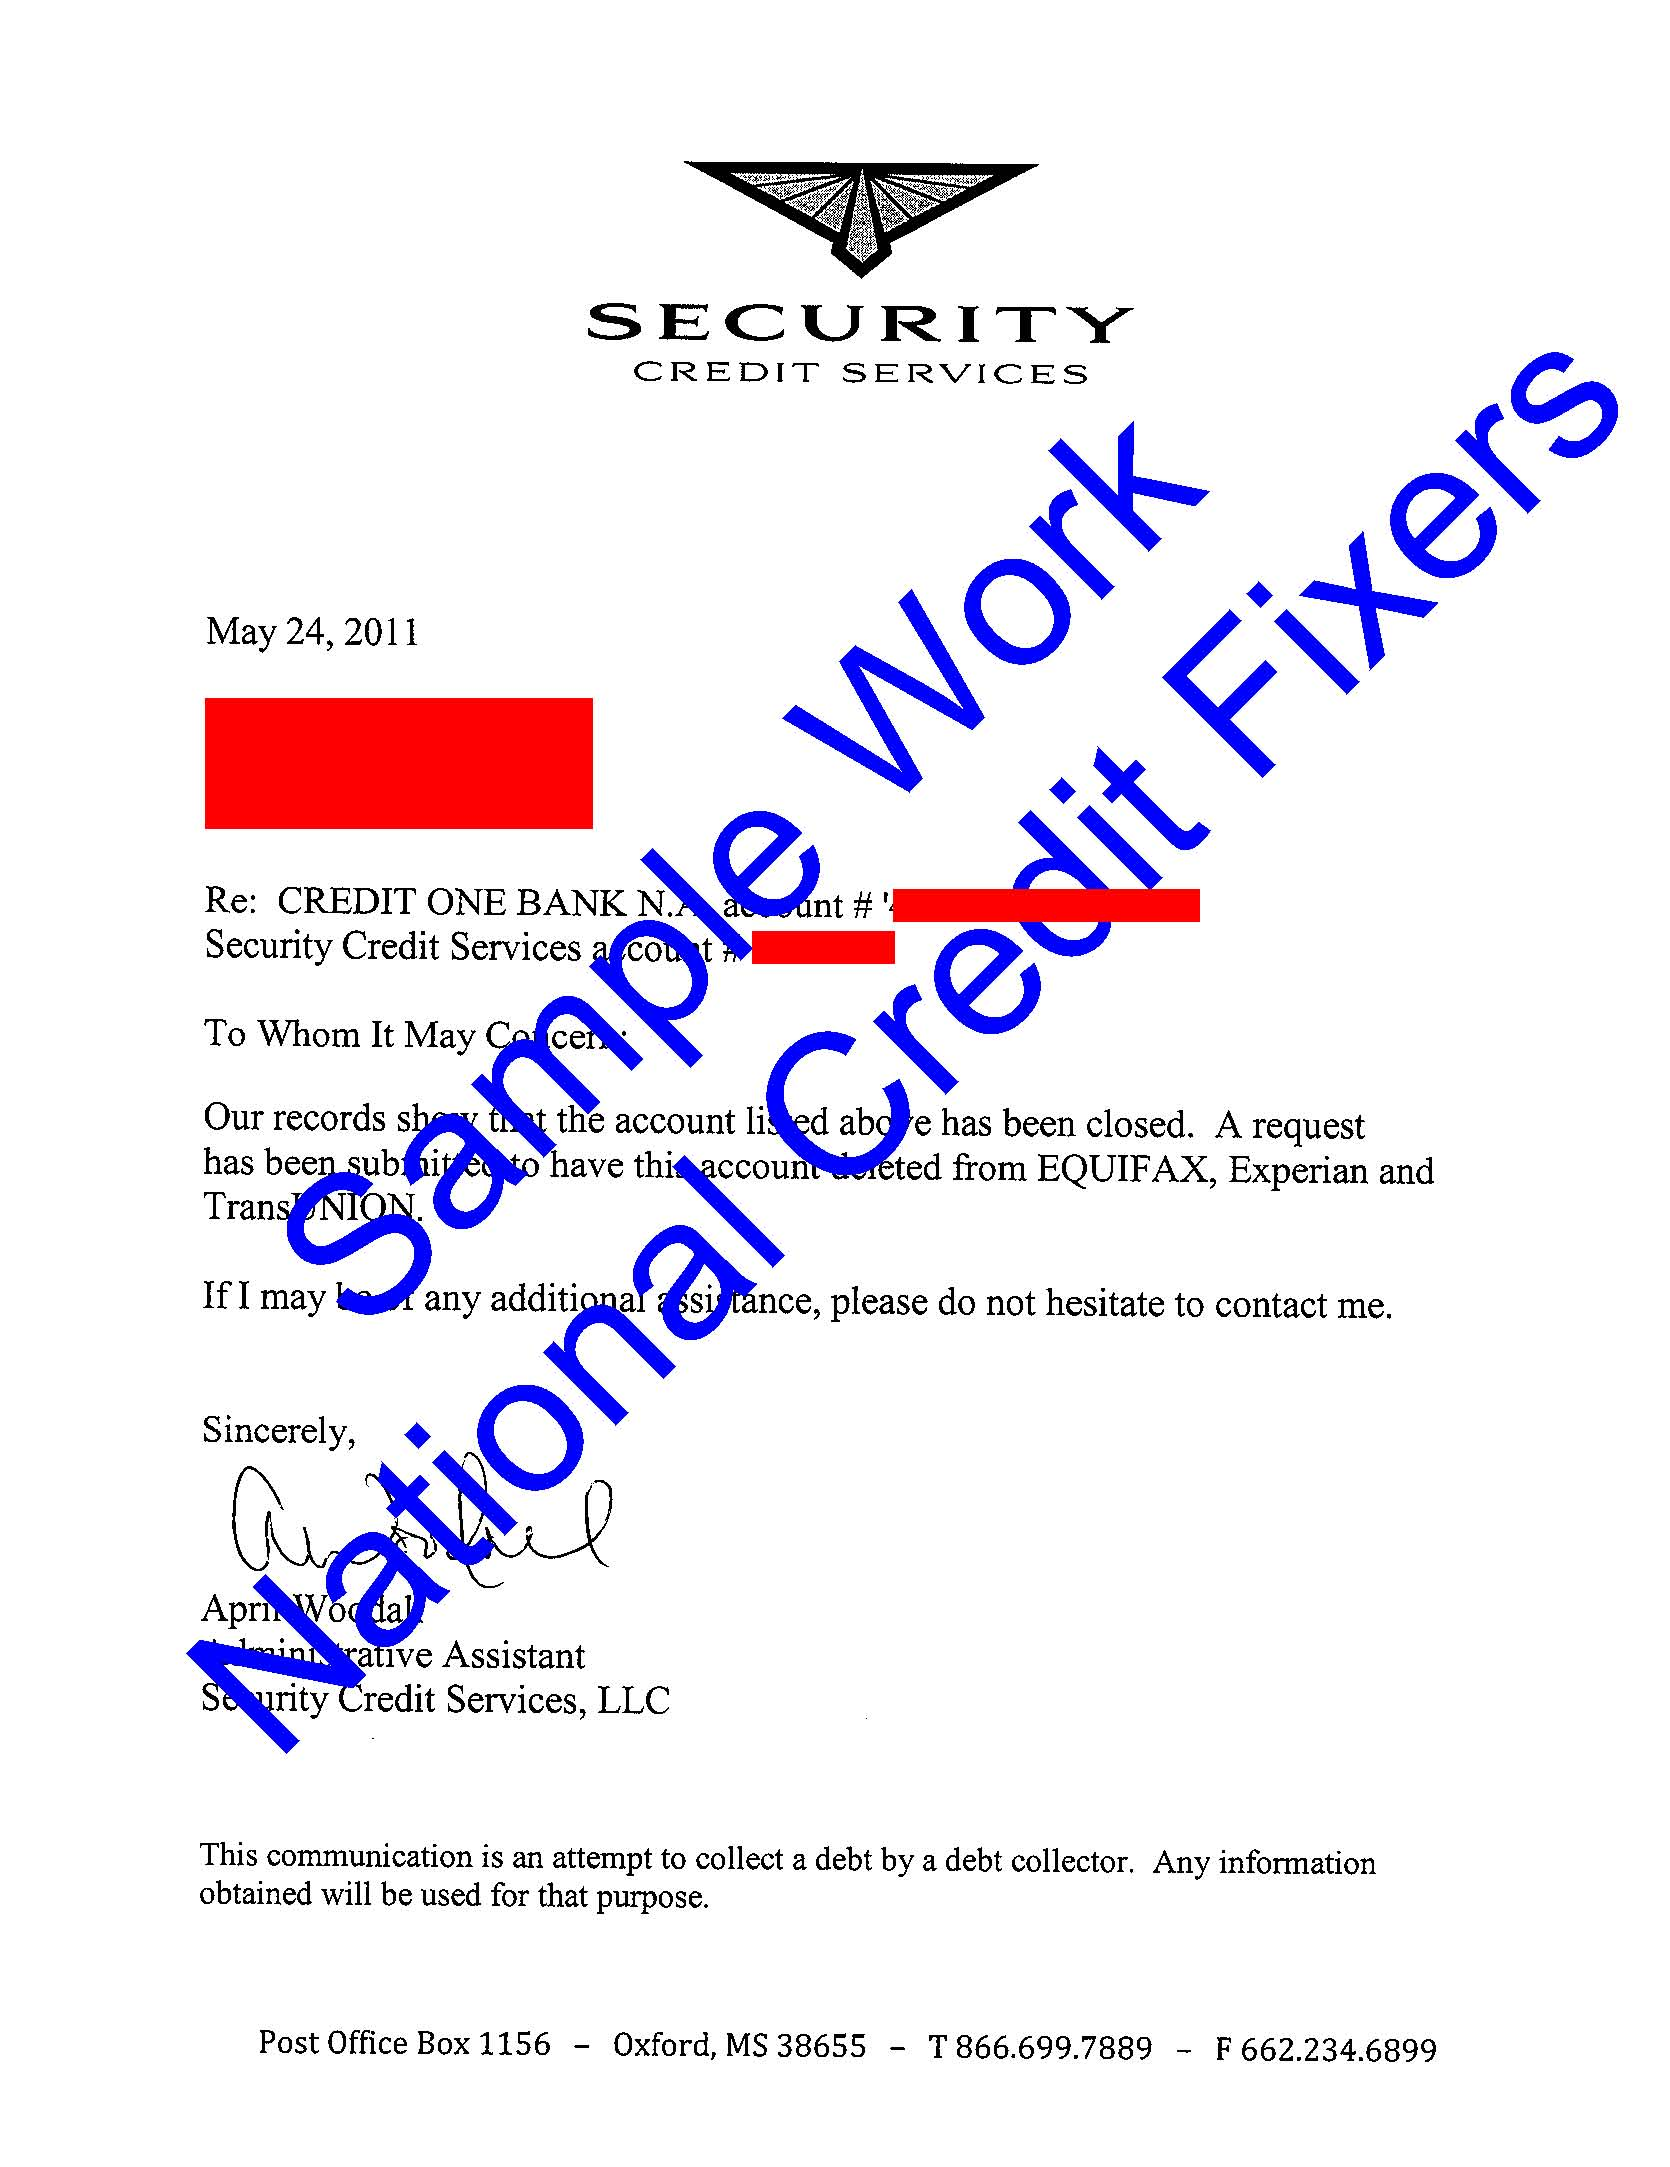 Security Credit Services Deletion 1